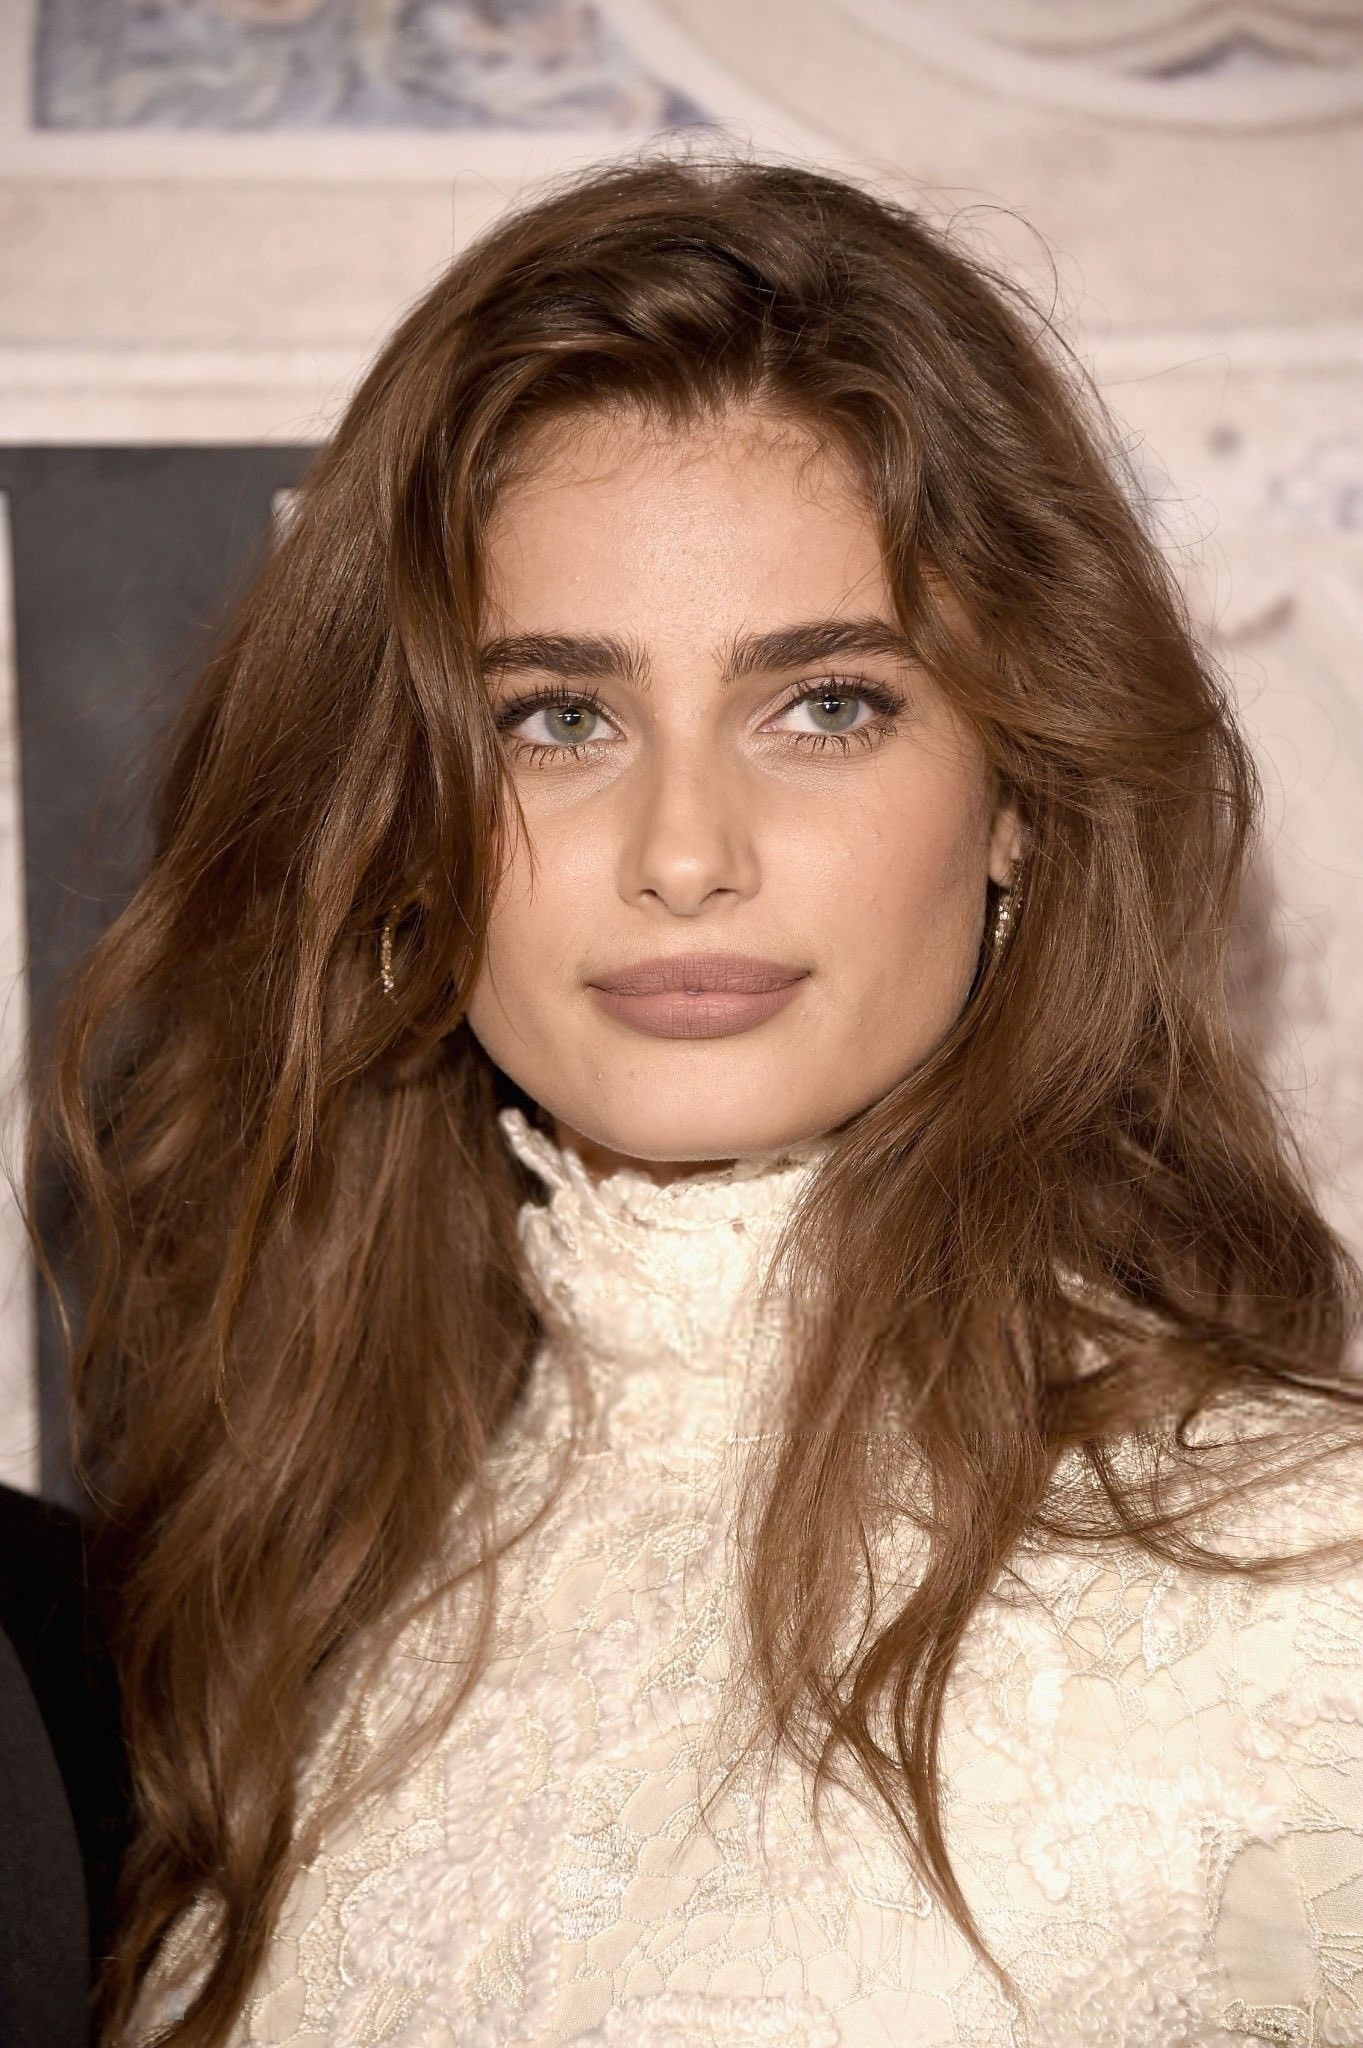 Taylor Hill (With images) Taylor hill, Beatiful people